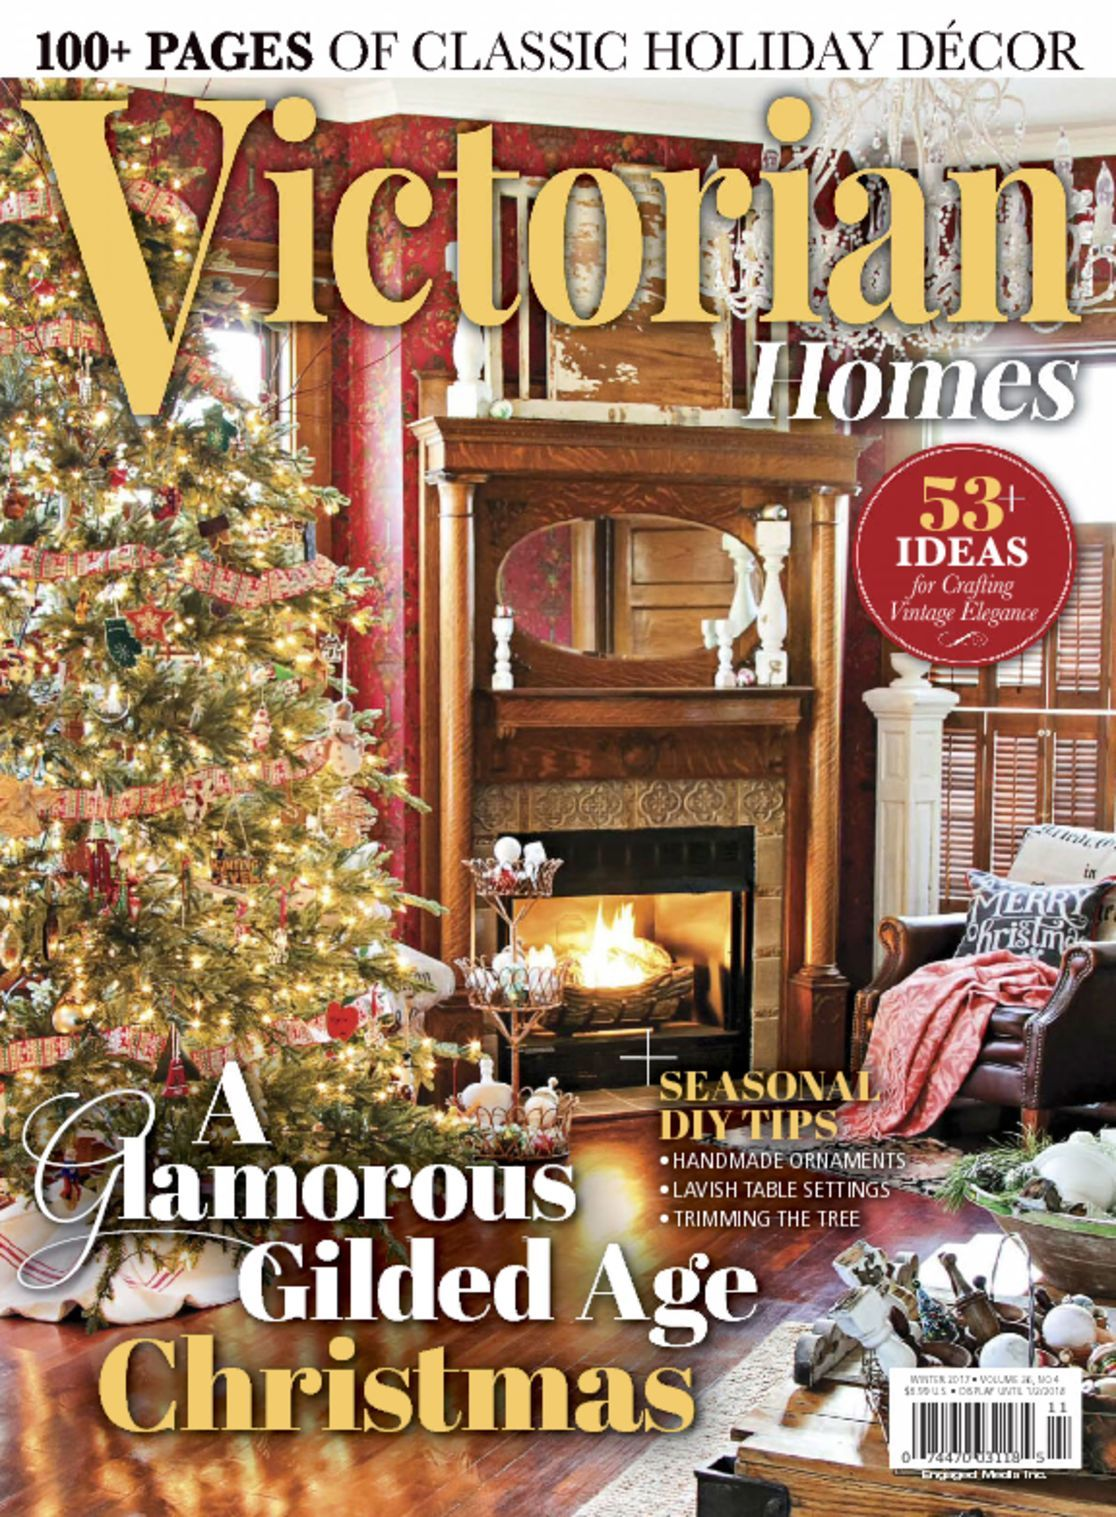 5403-victorian-homes-Cover-2017-September-1-Issue New Victorian Homes Design on new farmhouse designs, contemporary home designs, new european home designs, new country house plans, new single level home designs, new craftsman home designs, new beach home designs, new small house designs, new american home designs, new rancher home designs, new green home designs, new custom home designs, new modern home designs, new tudor home designs, new ranch house designs, new split level home designs, new ranch house plans, new villa home designs, new brick house designs, new farm home designs,